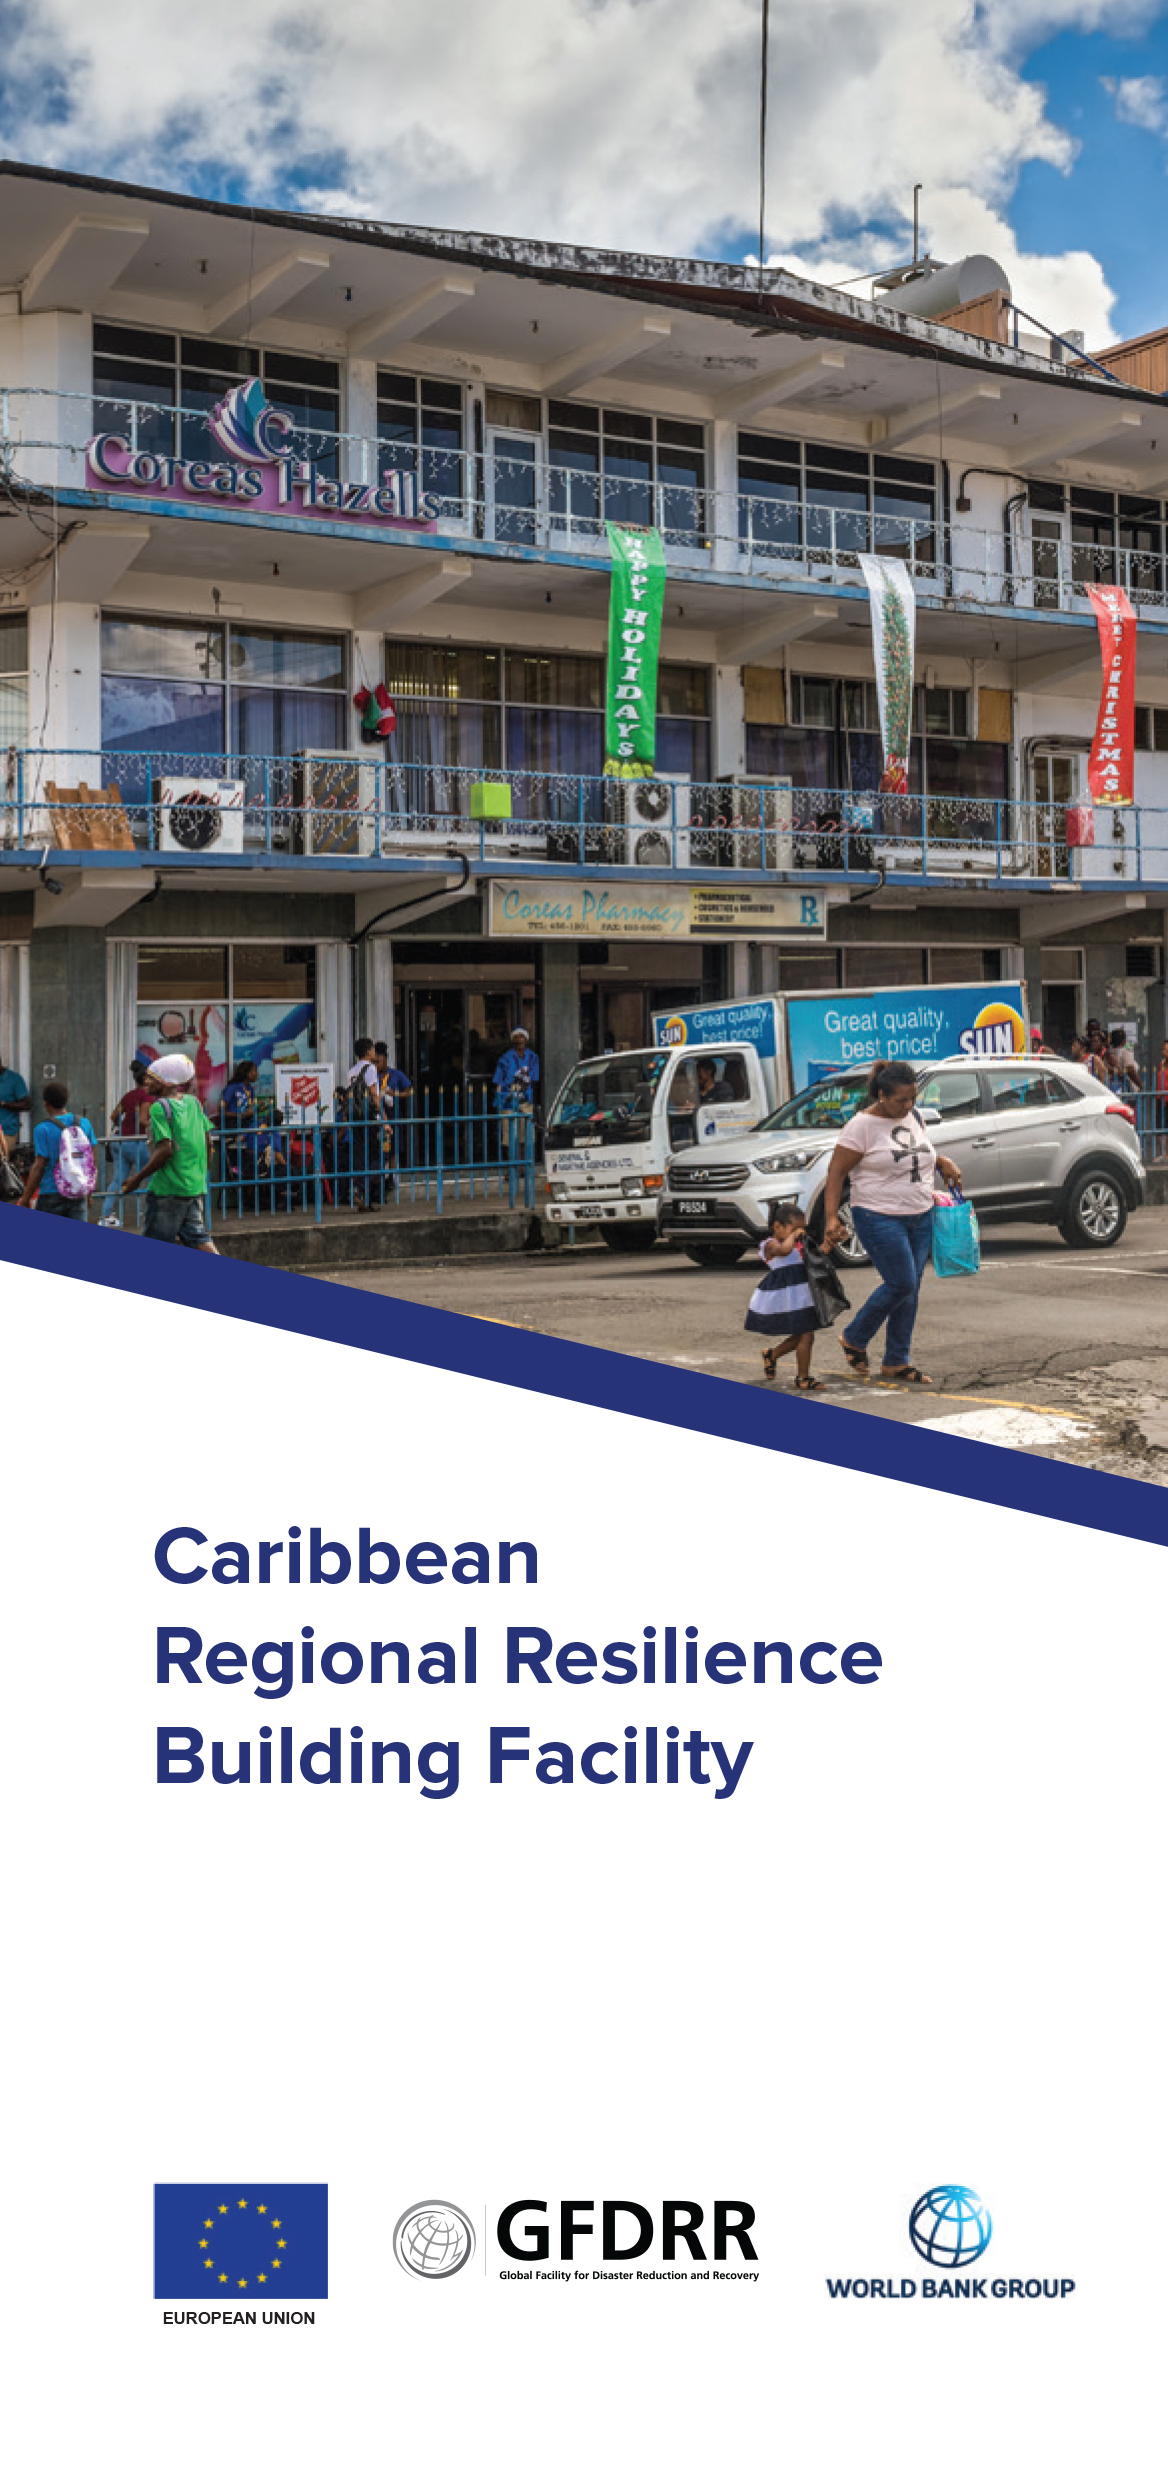 A photo shows a woman walking with her daughter outside of a shopping center. Underneath the photo is a caption that says Caribbean Regional Resilience Building Facility